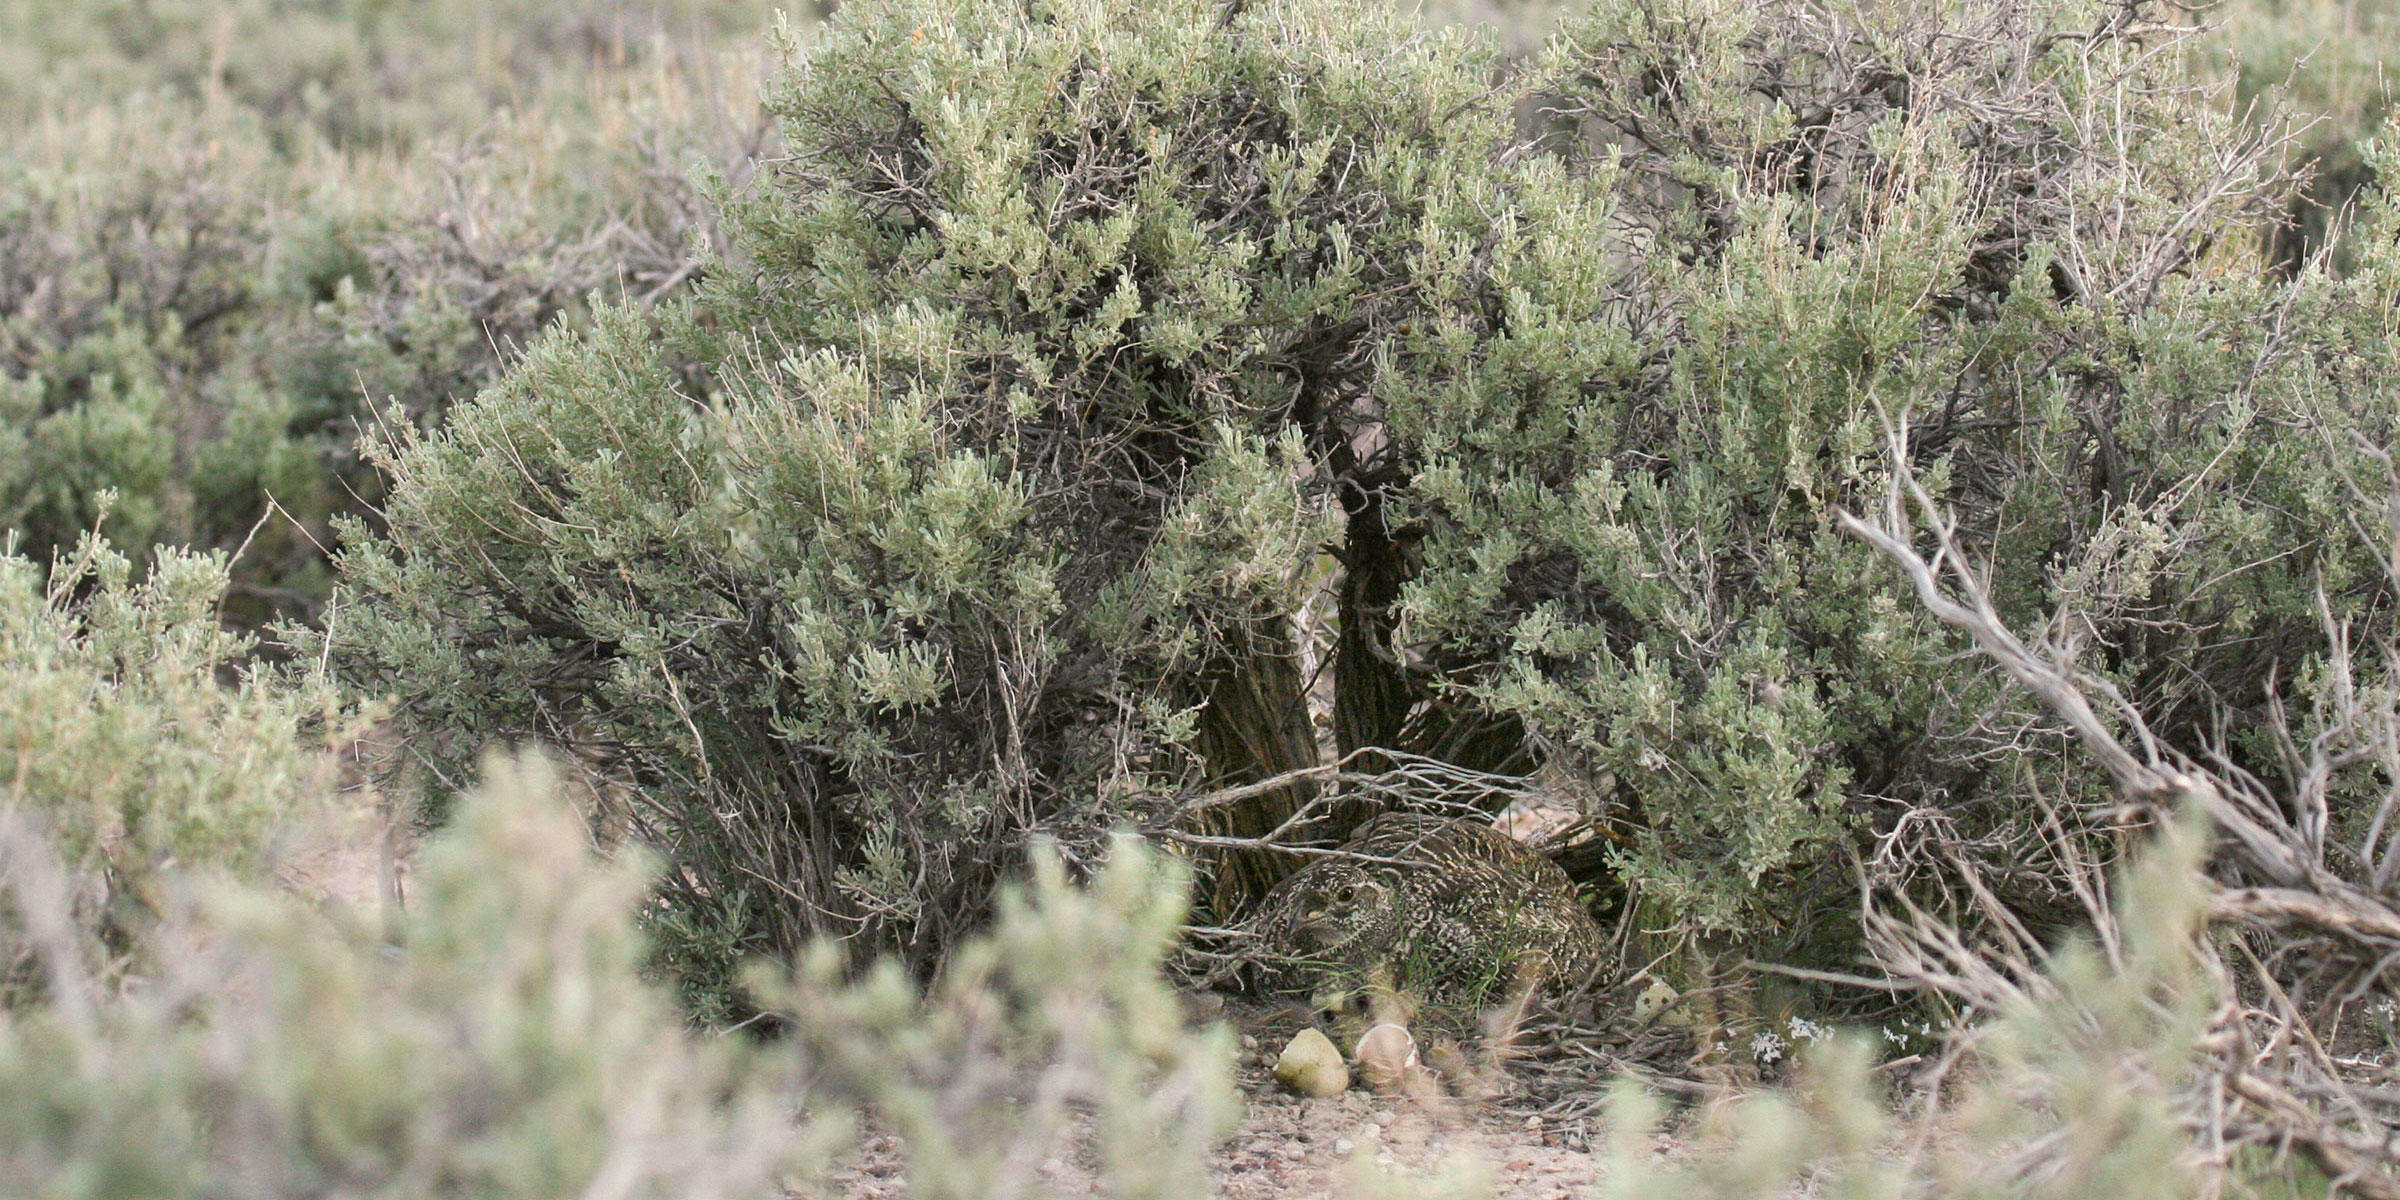 A Greater Sage-Grouse nesting under a Big Sagebrush plant is well camouflaged. Dr. Erik J. Blomberg